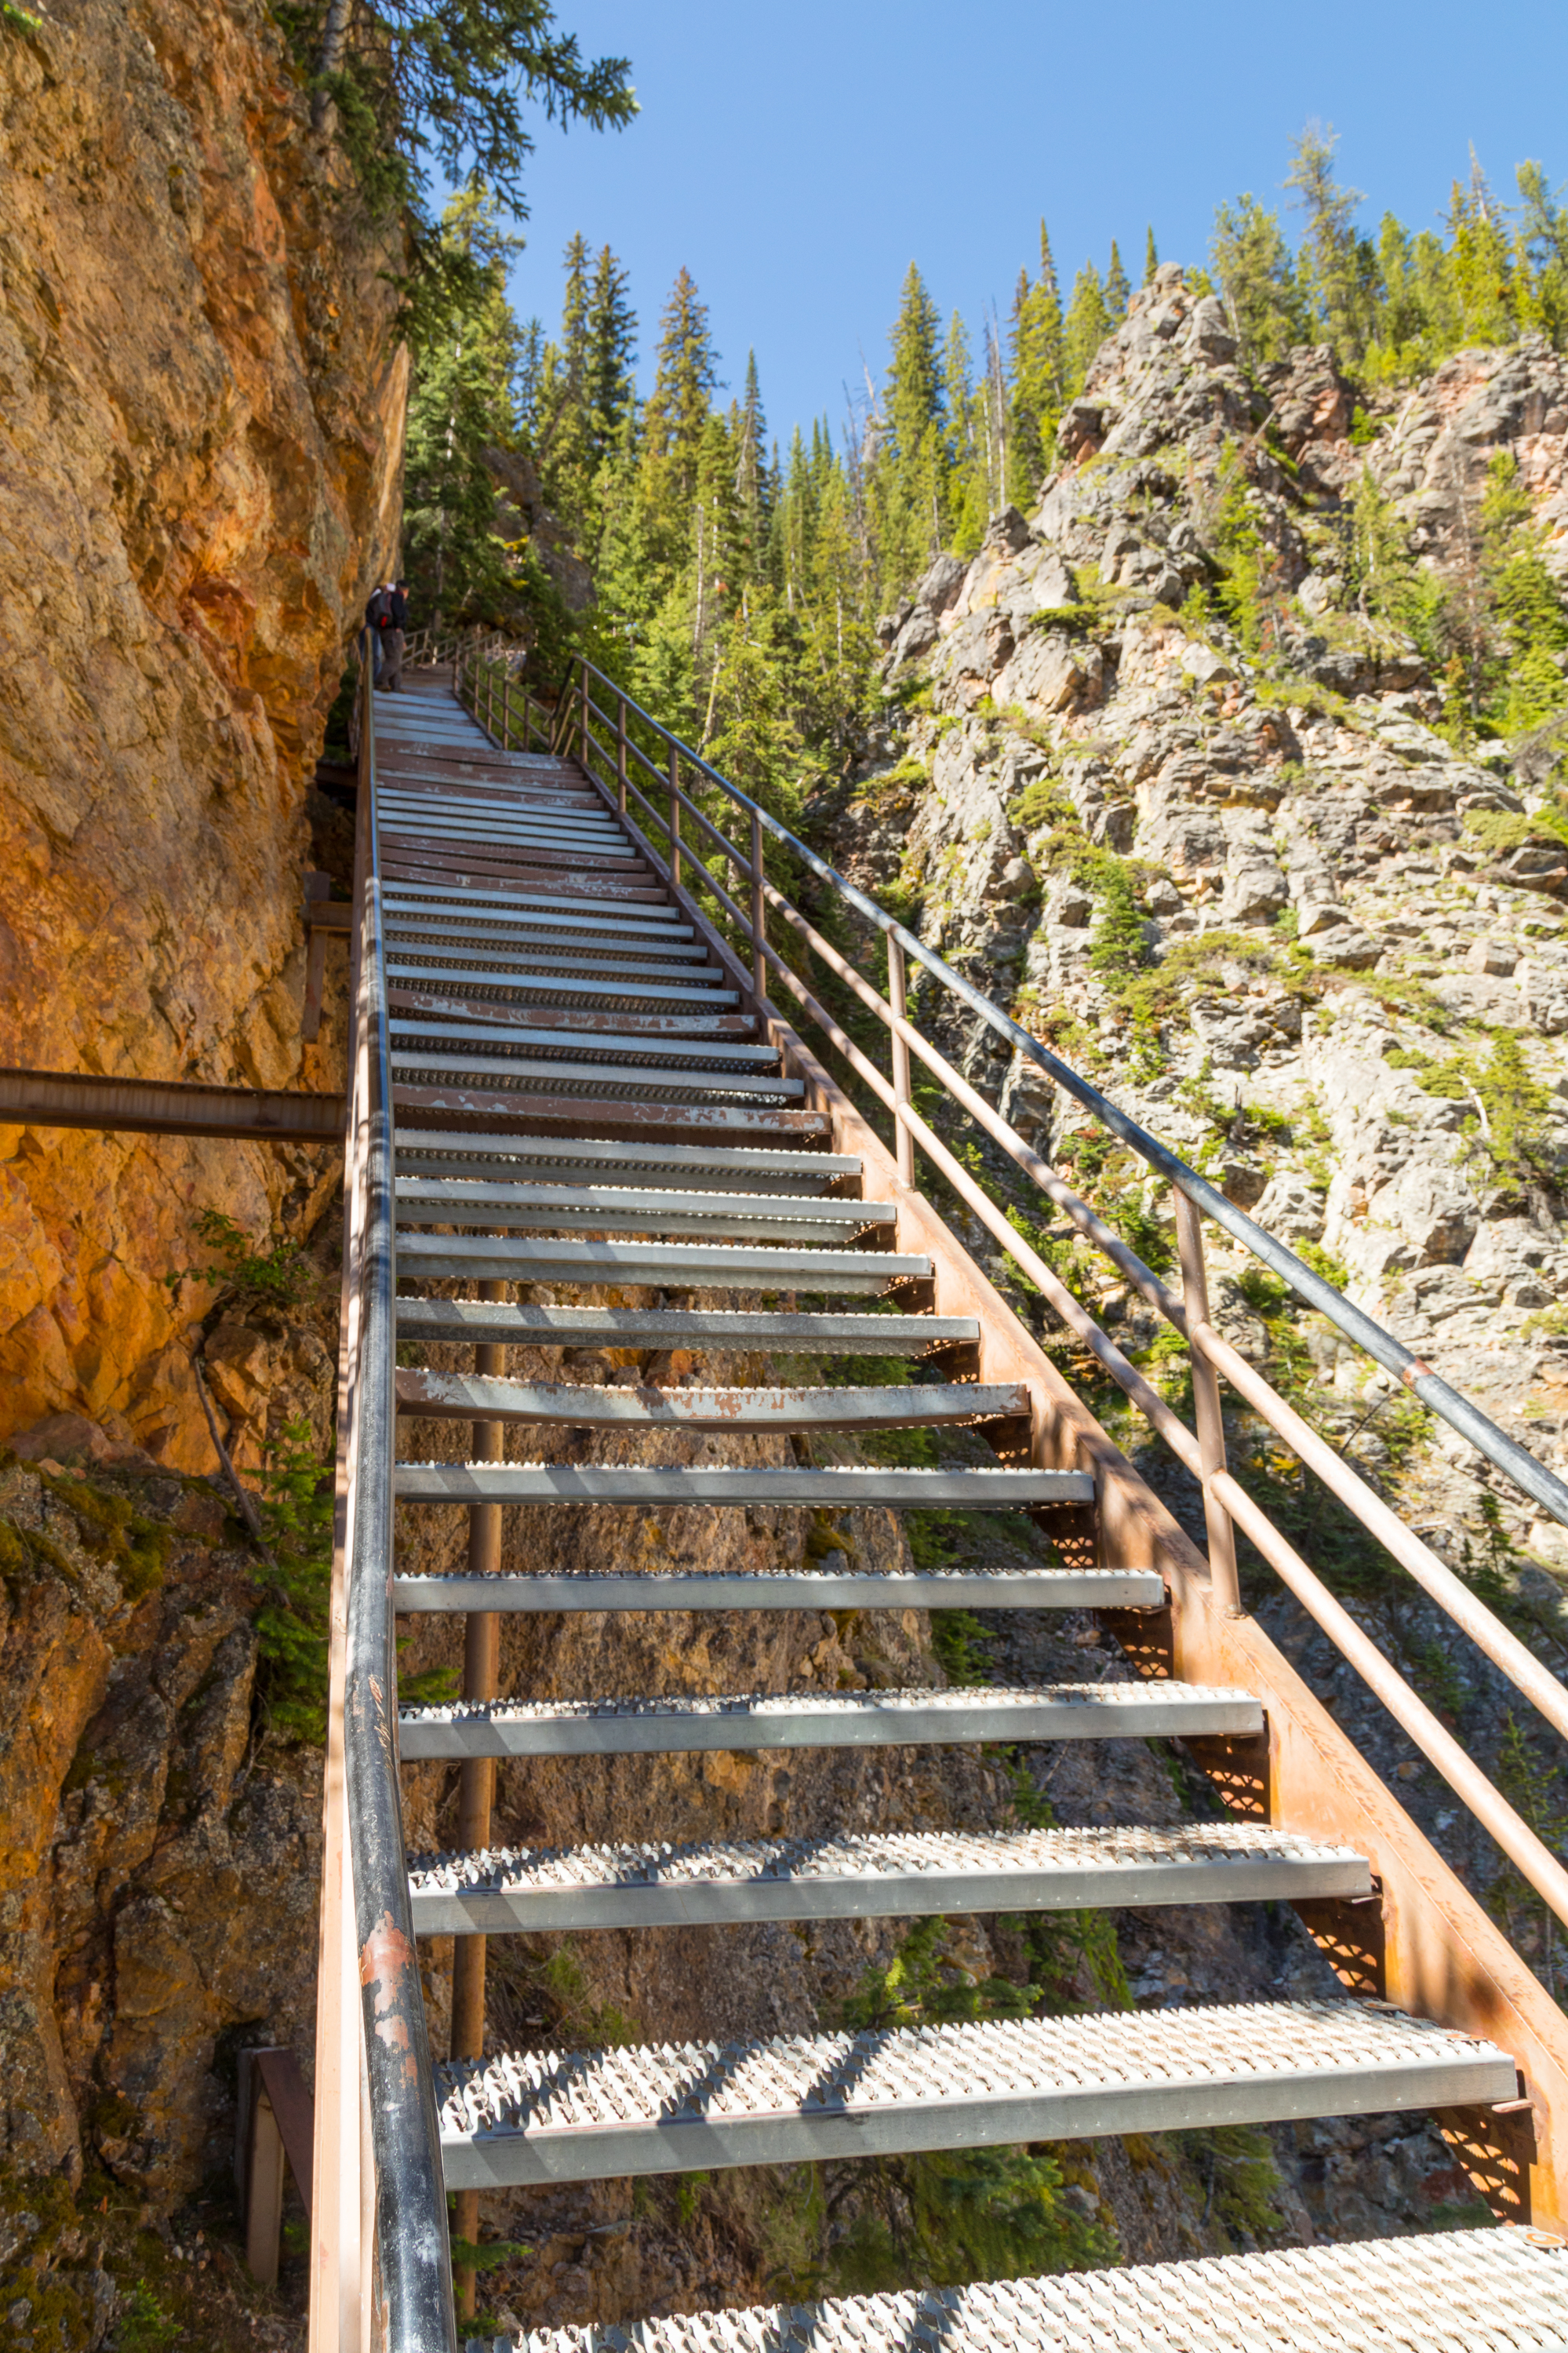 Uncle Tom's Trail, Yellowstone National Park, Image # 7130